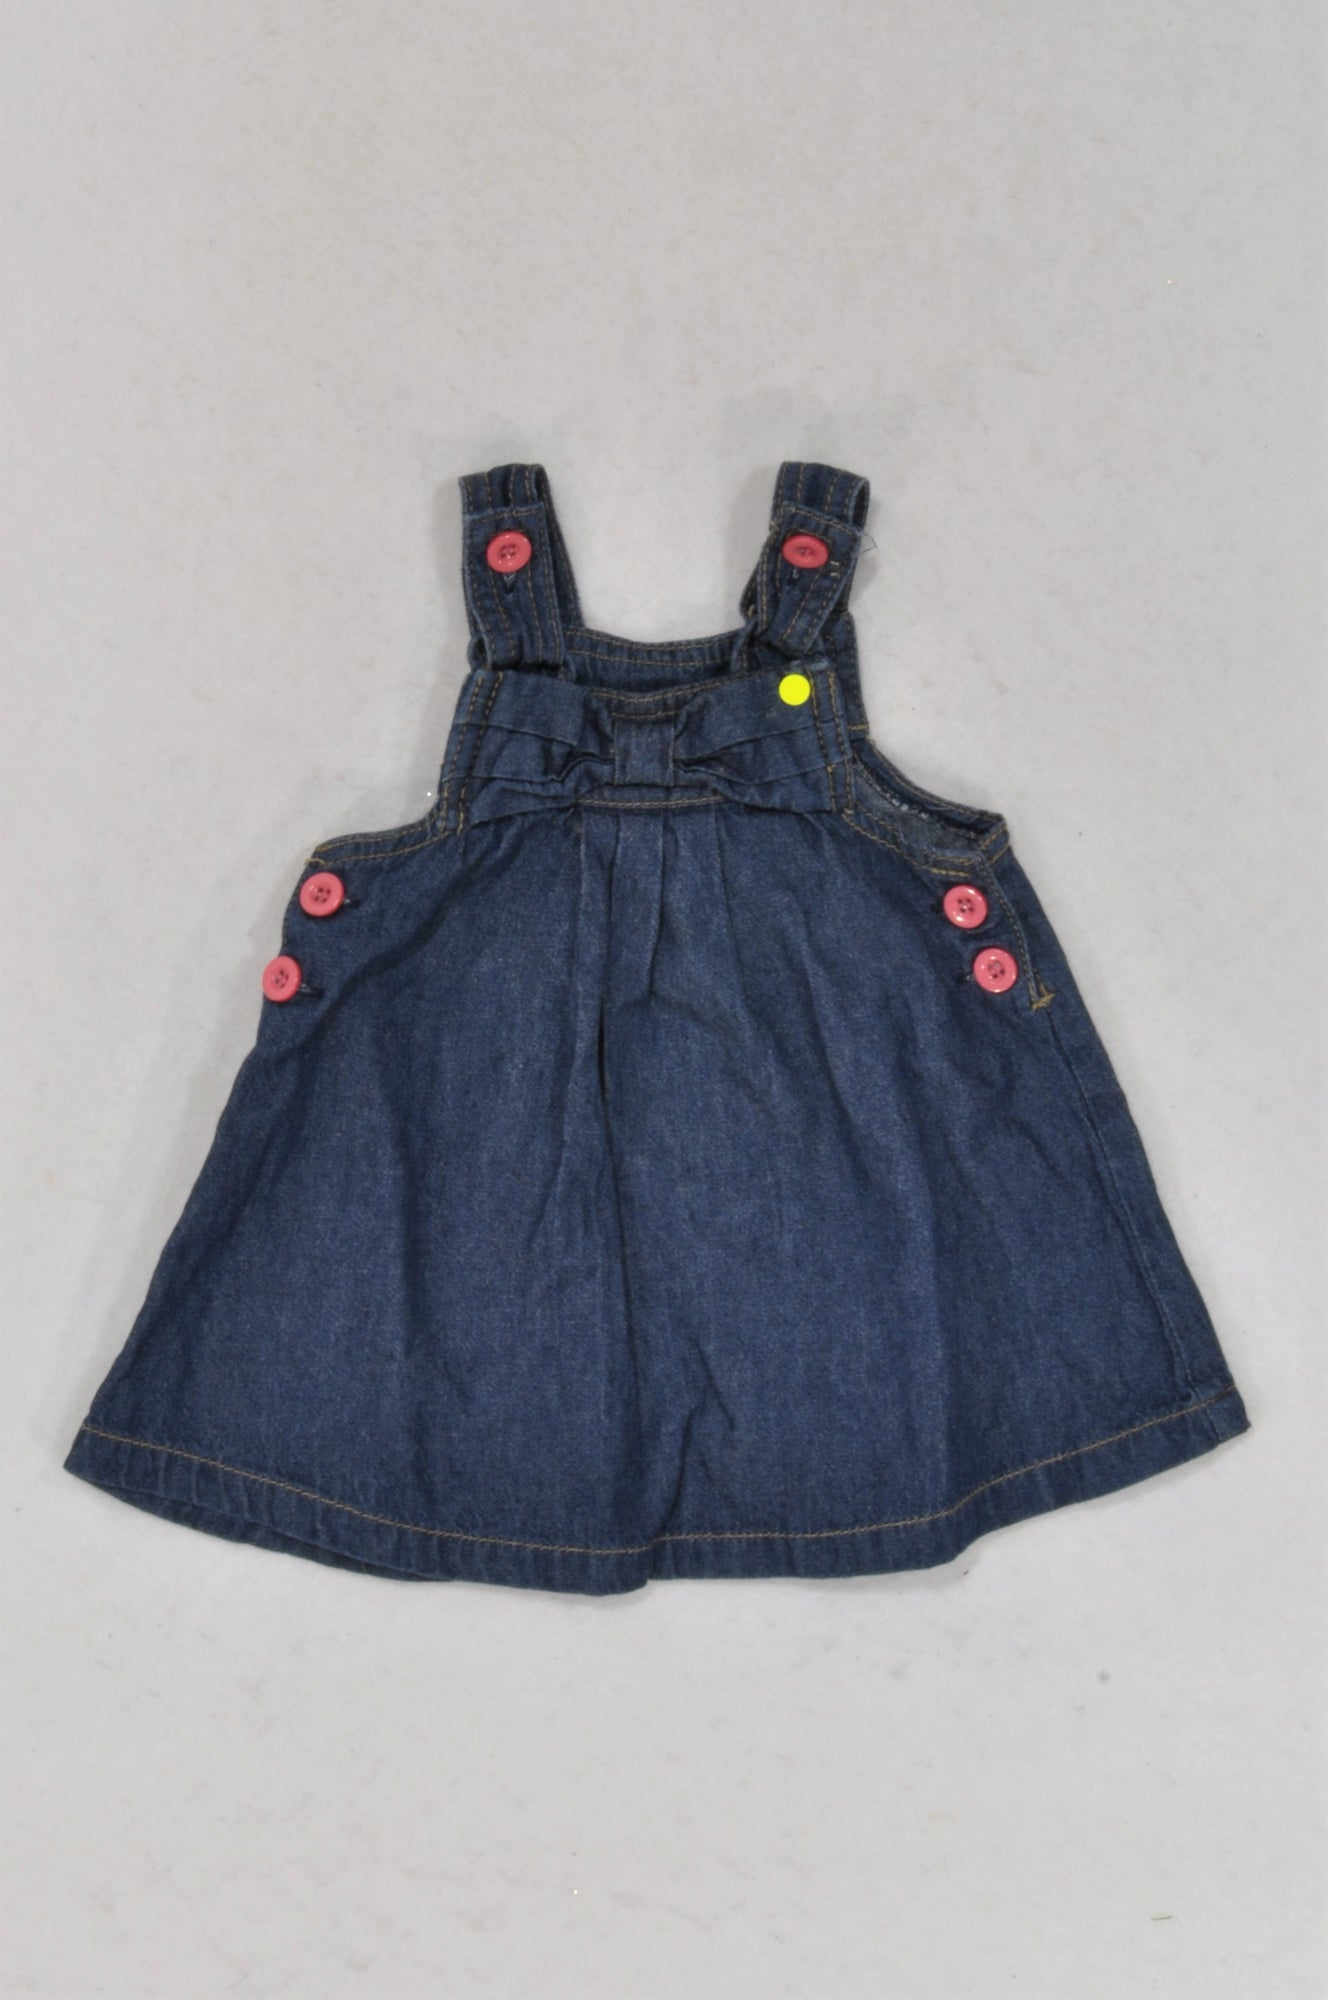 Ackermans Denim Bow Pink Button Dungaree Dress Girls 3-6 months